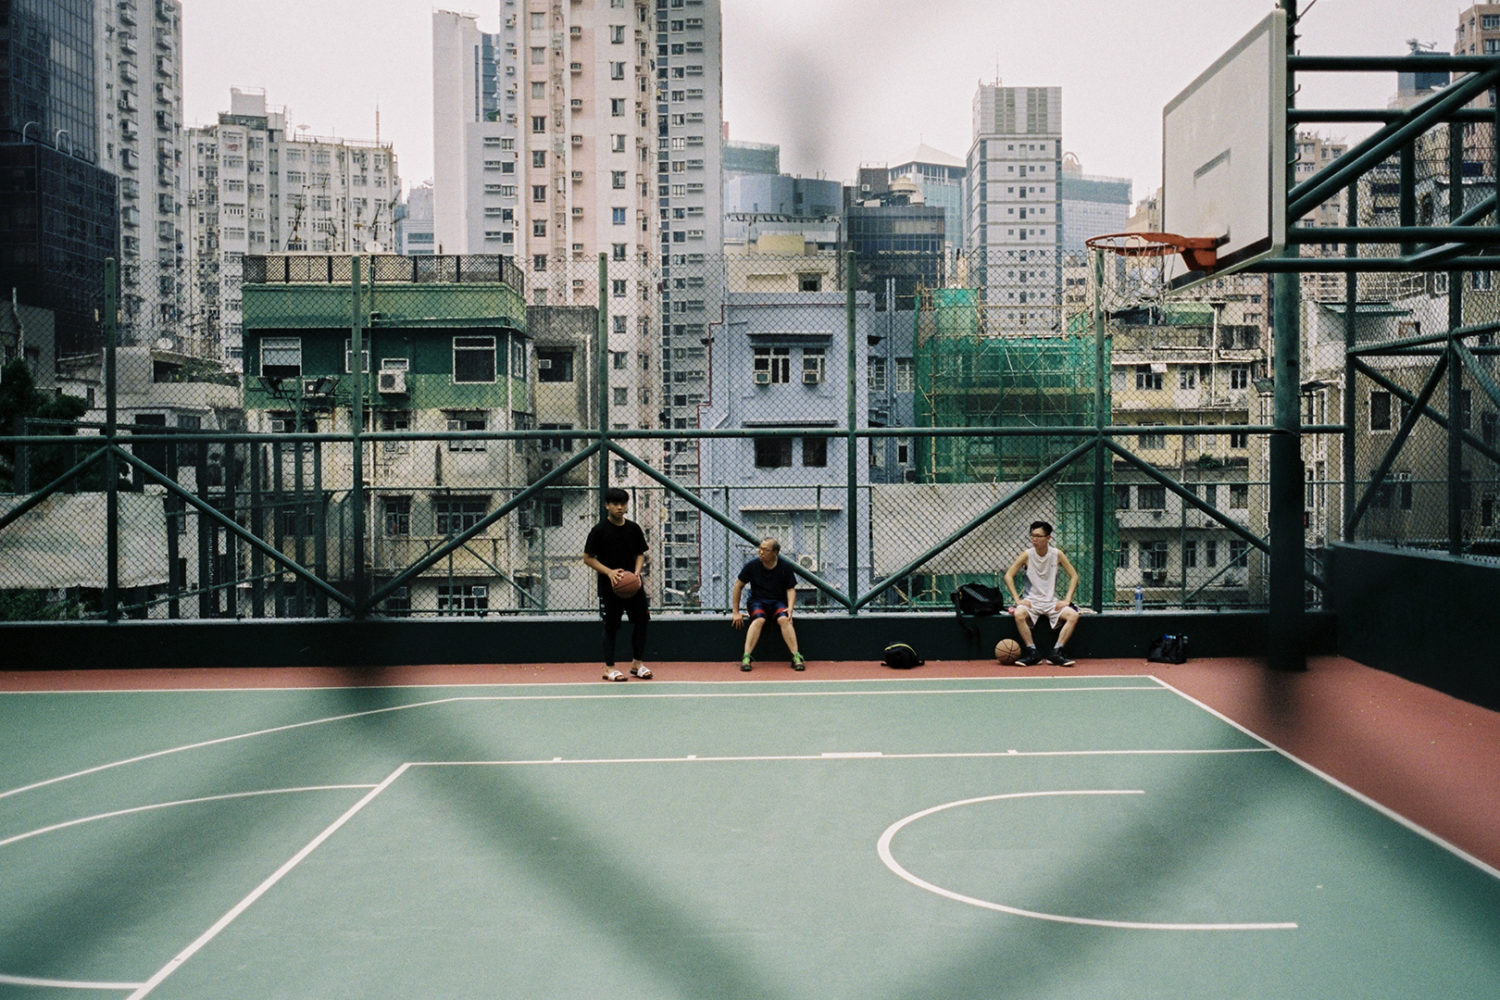 Andrew Curry shares tips on skillful street photography in busy cities